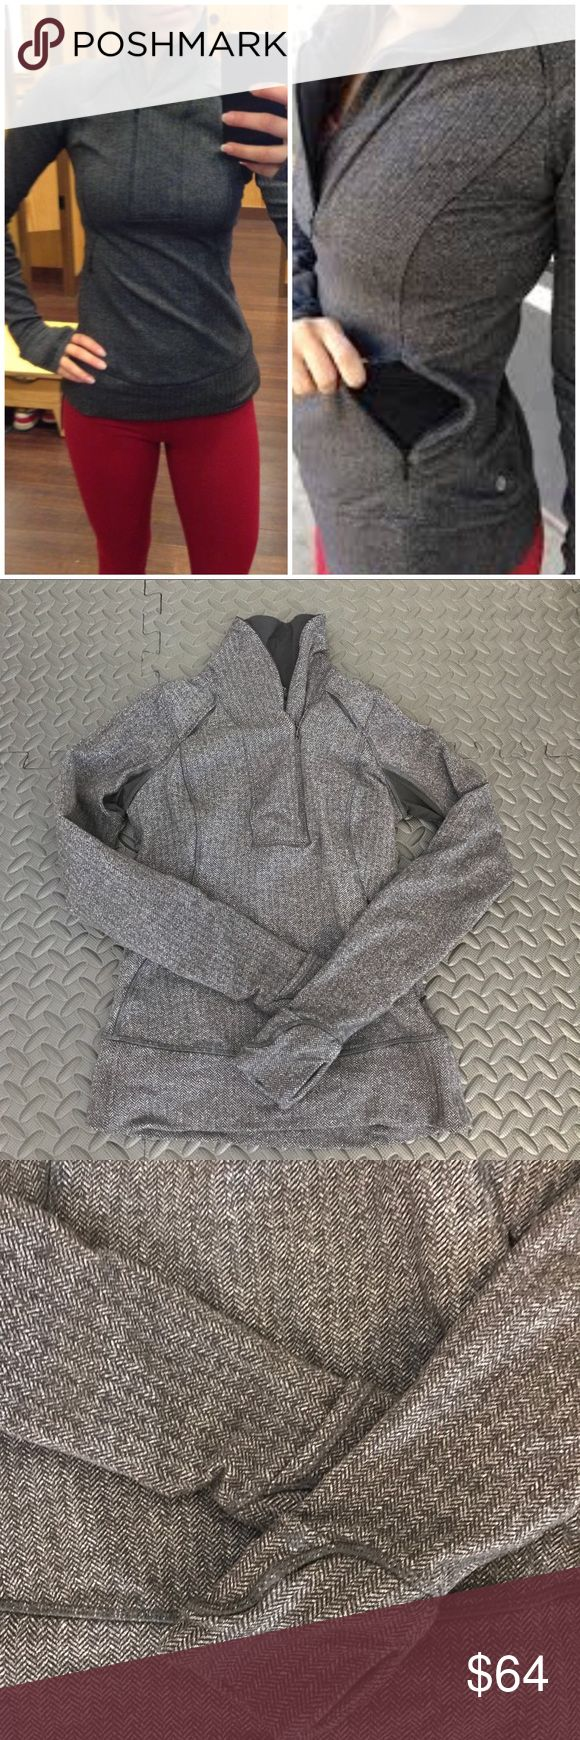 Euc lululemon think fast 1/2 zip pullover size 2 Excellent condition, lululemon think fast pullover 1/2 zip in Heather herringbone. Size 2. Key features soft Rulu fabric is sweat-wicking and four-way stretch durable LYCRA® fibres add great shape retention secure storage for keys, cards and cash low-profile details help you shine bright in low light flat seams are chafe-resistant Cuffins fingers  Fit + function designed for: run fabric(s): Rulu , LYCRA® fit: tight length: hip lululemon…